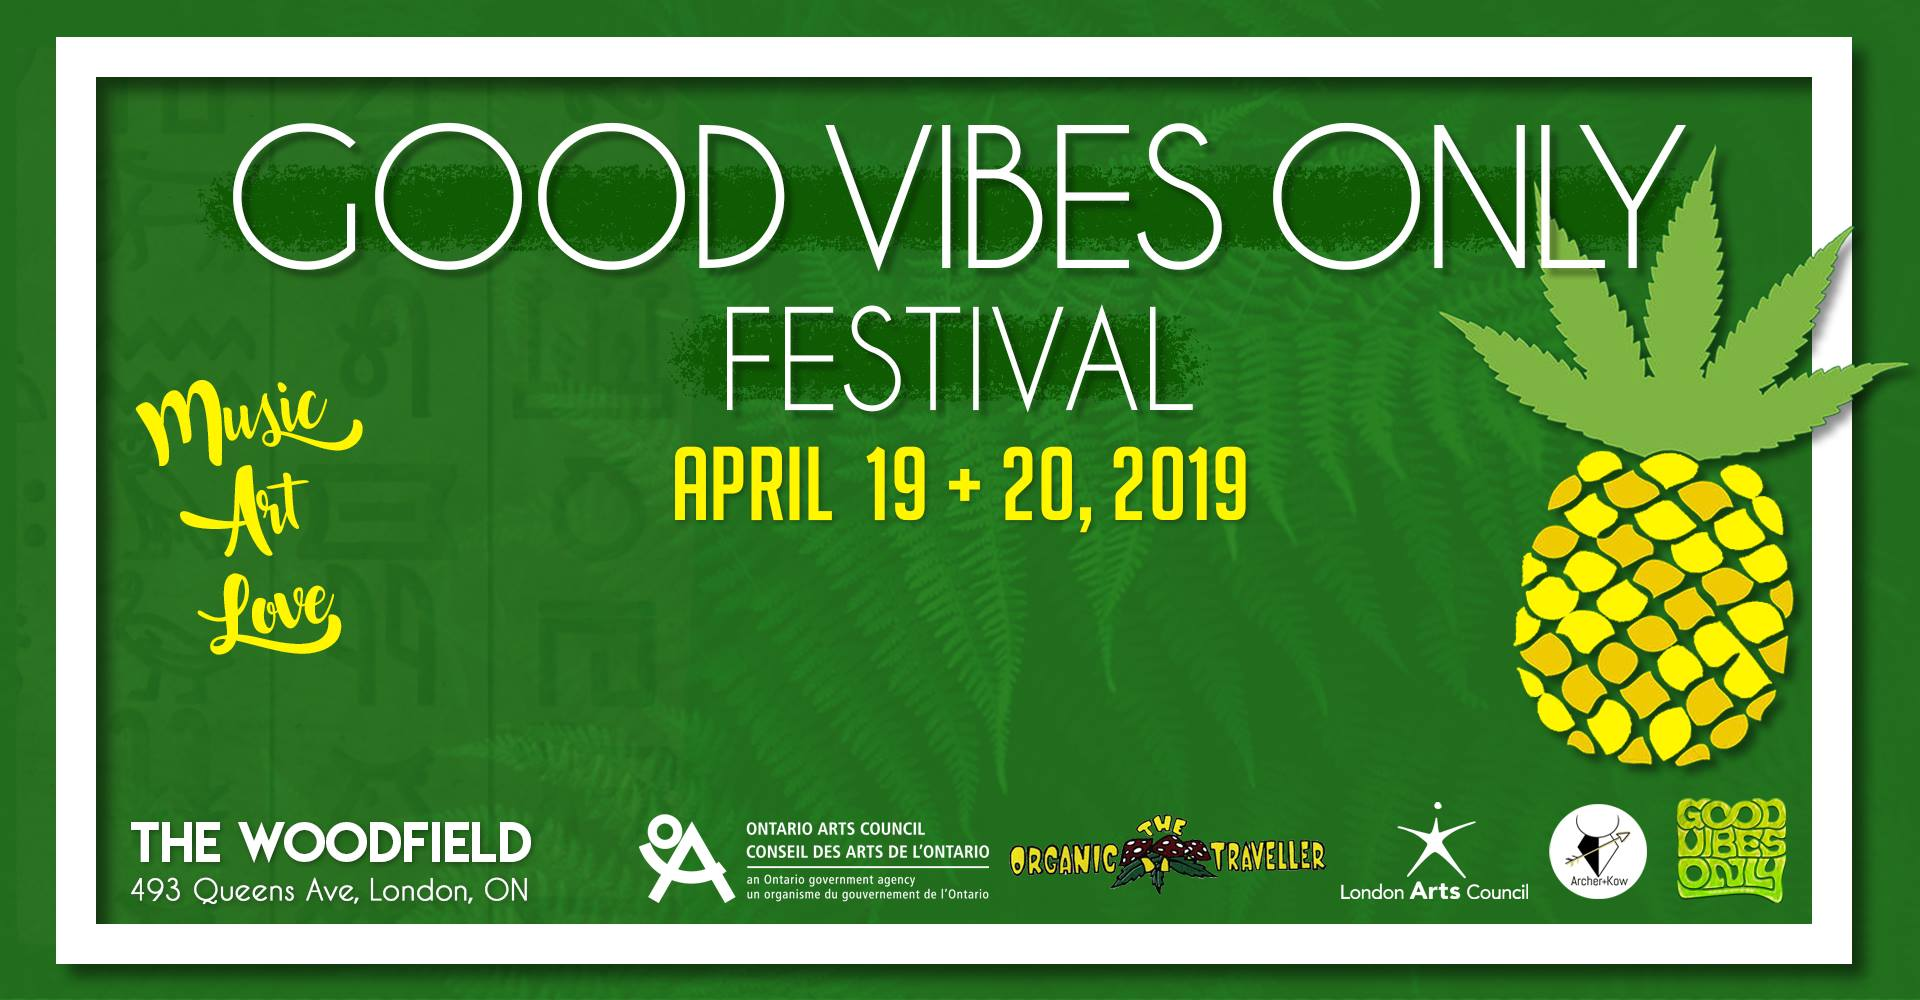 Good Vibes Only Fest 2019: Five reasons why you need to be there